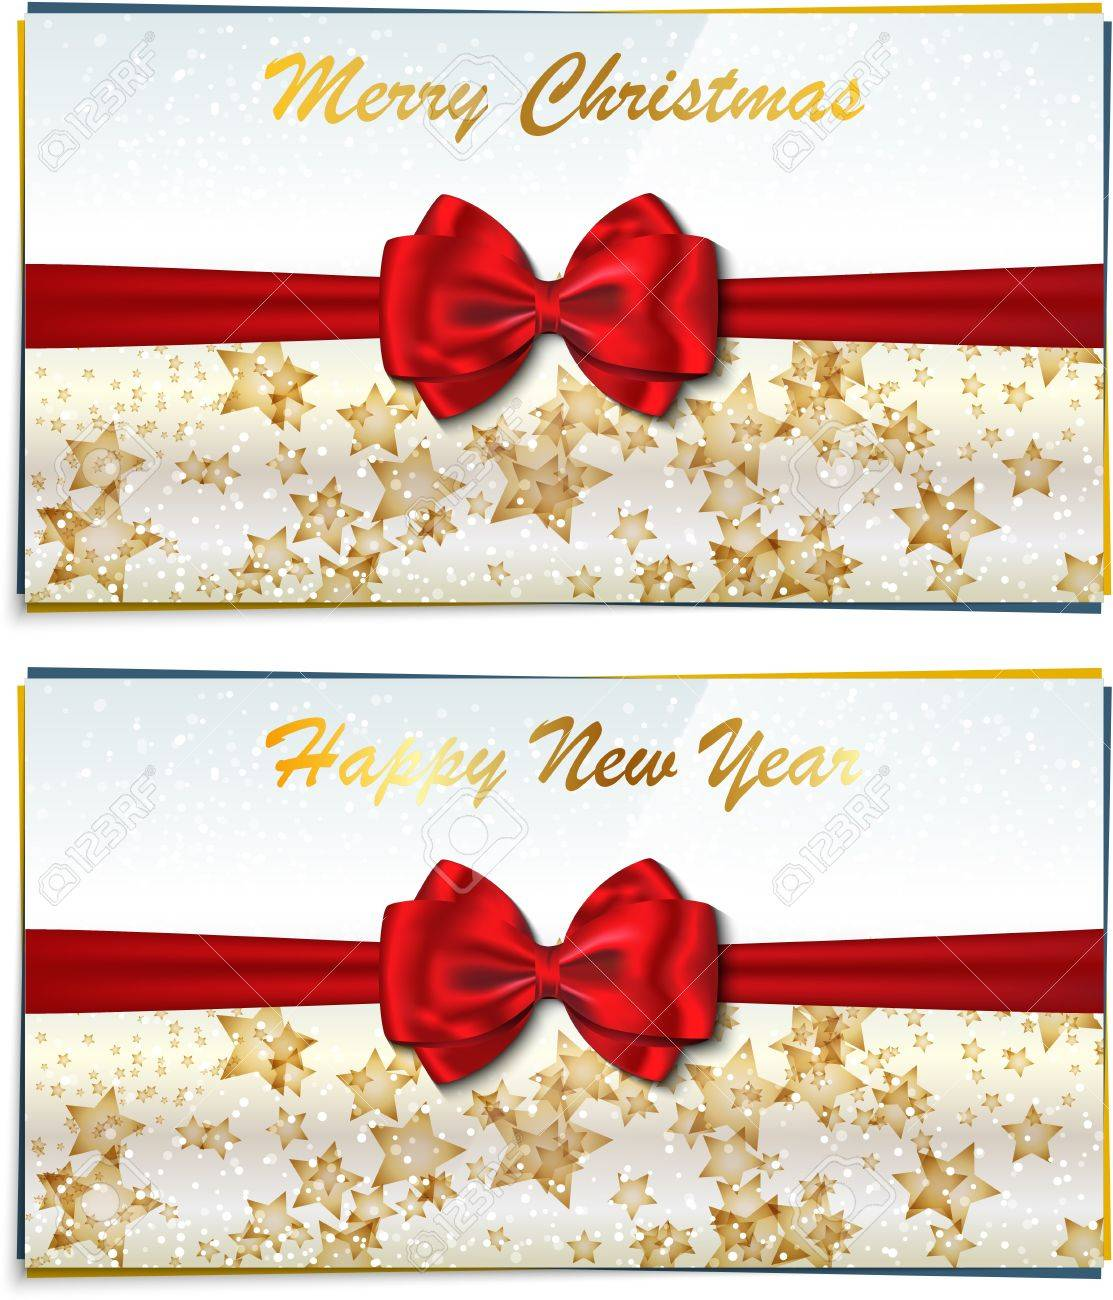 two luxury greeting cards congratulating winter holidays merry christmas and happy new year letterings vector illustration